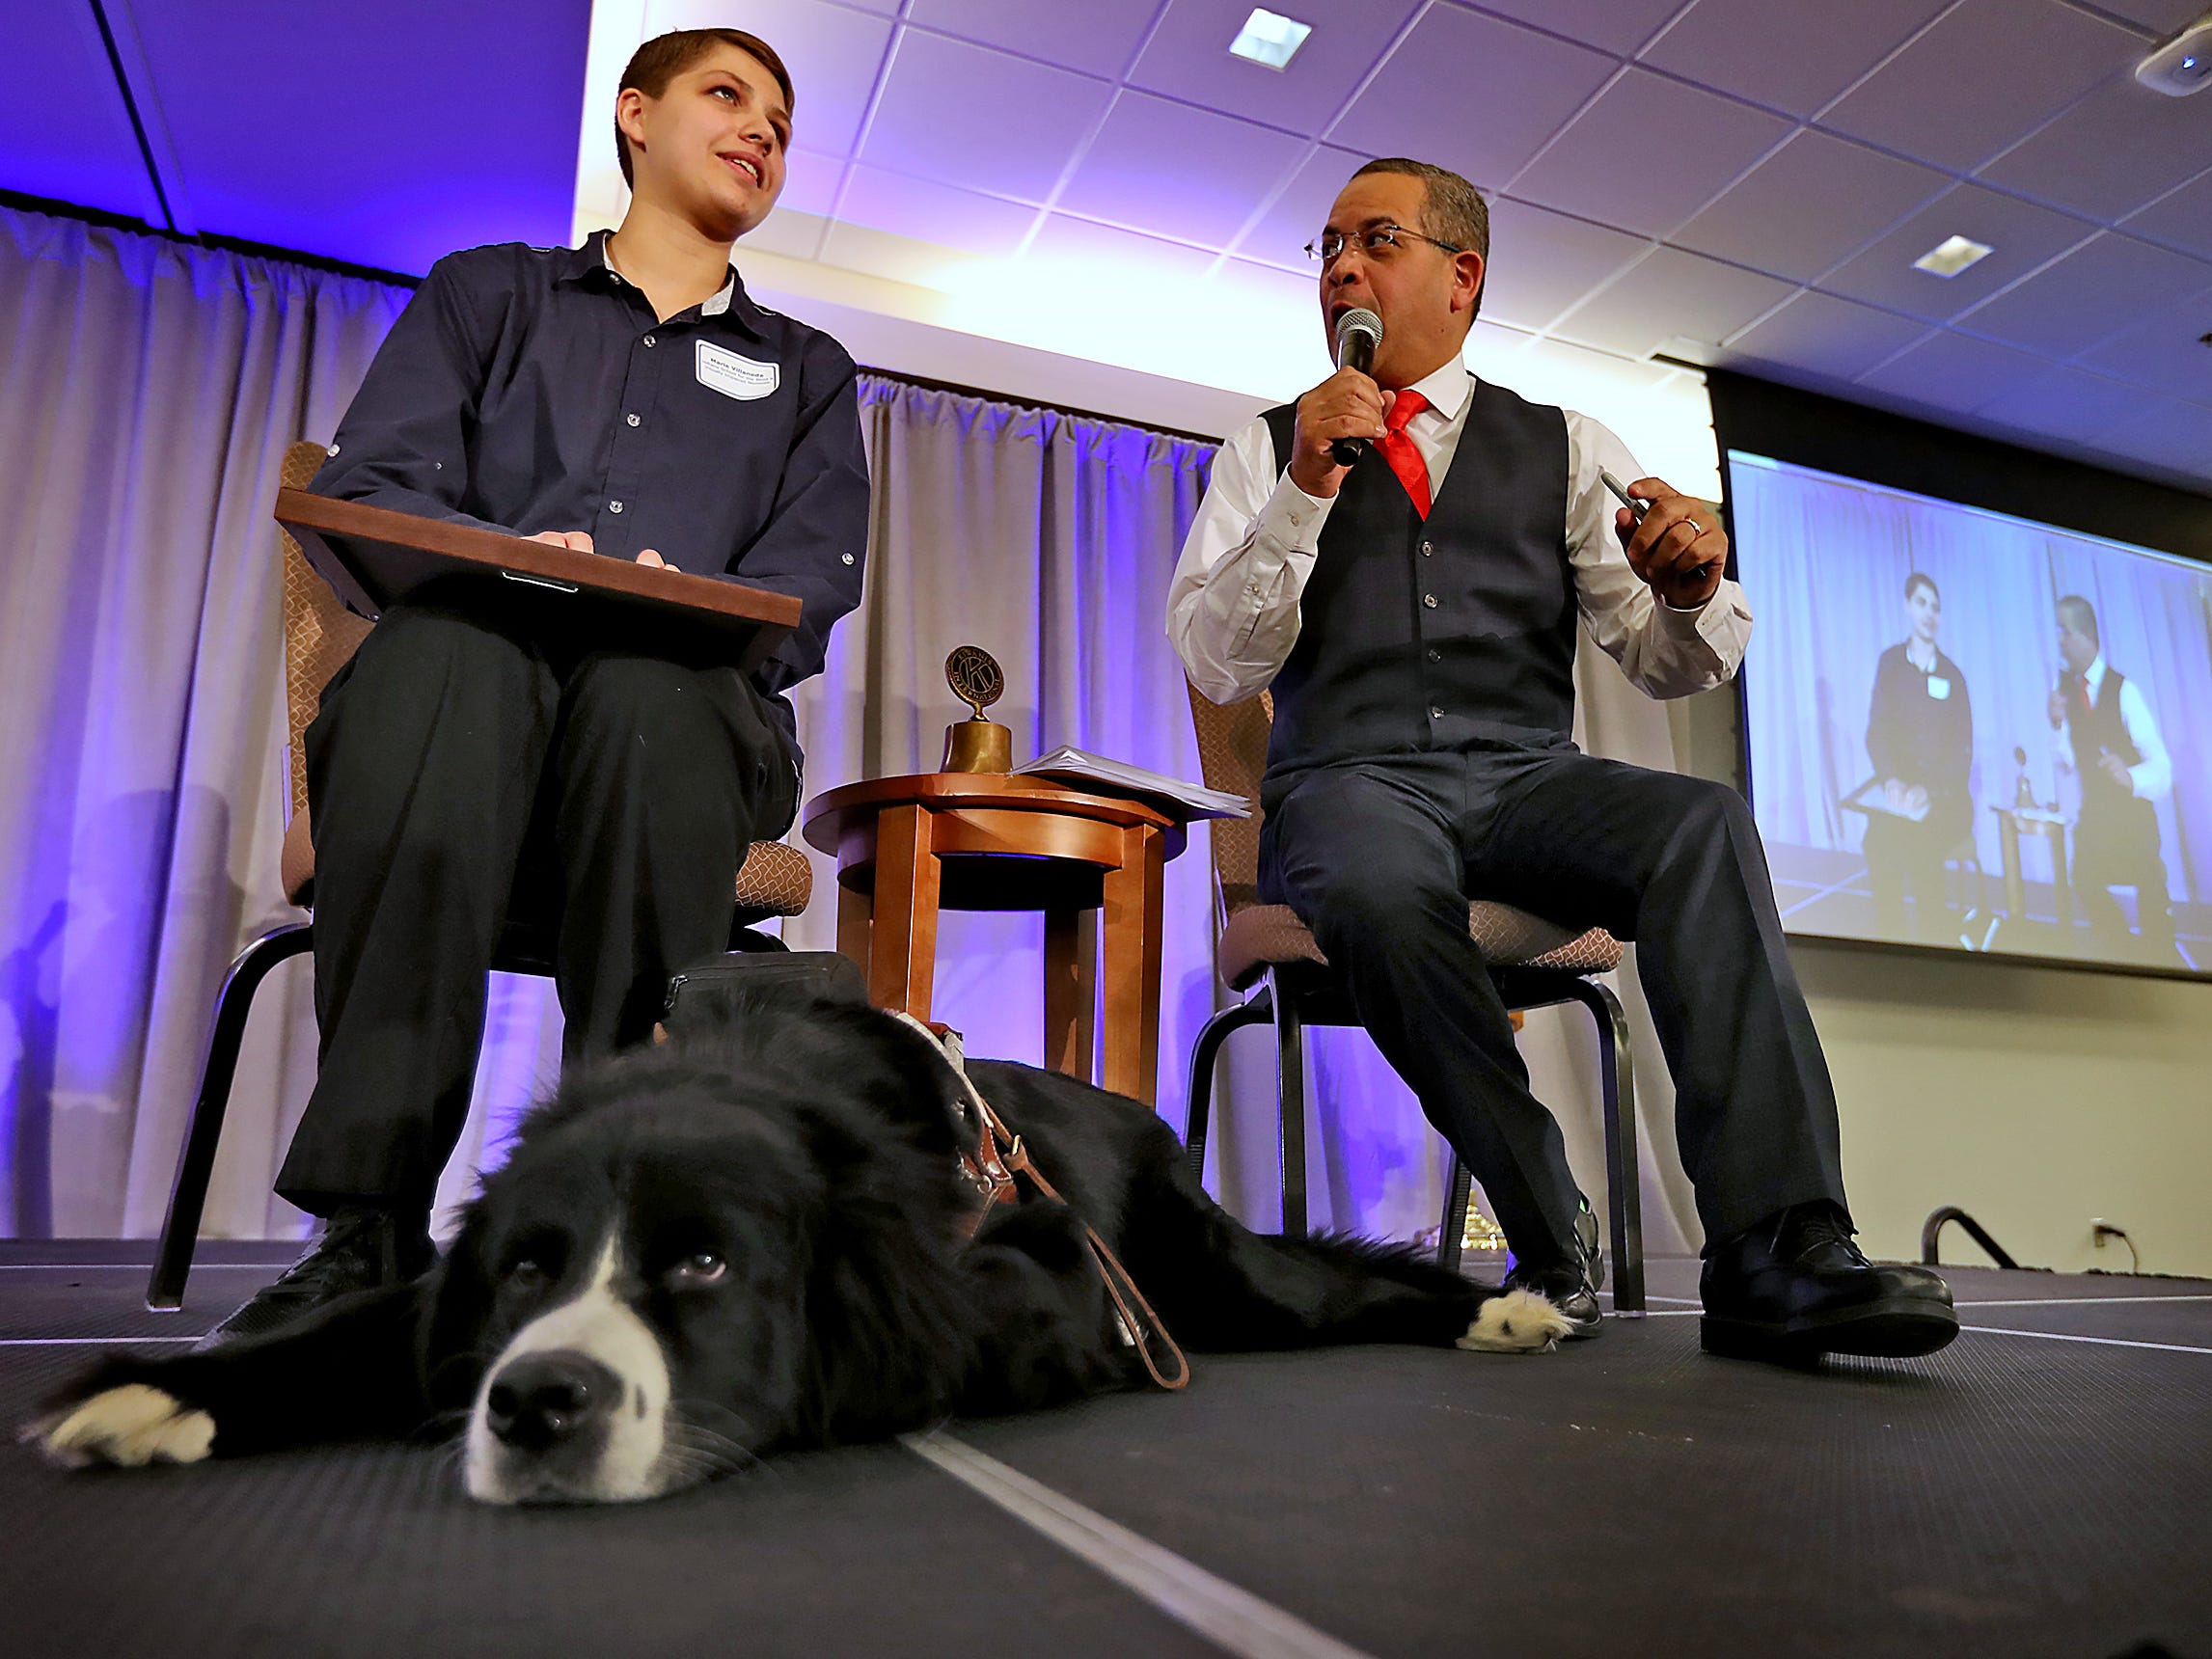 Indiana School for the Blind & Visually Impaired student Marie Villaneda, left, sitting with her guide dog Bear, is interviewed by Rafael Sanchez after being presented the 3rd Place Scholarship award at the 44th Annual Abe Lincoln Awards Program, Friday, Feb. 8, 2019. The Kiwanis Club of Indianapolis program was held at Ivy Tech Community College.  20 high school student were honored at the annual event which celebrates overcoming adversity in life to succeed.  Four of the 20 students were given scholarships.